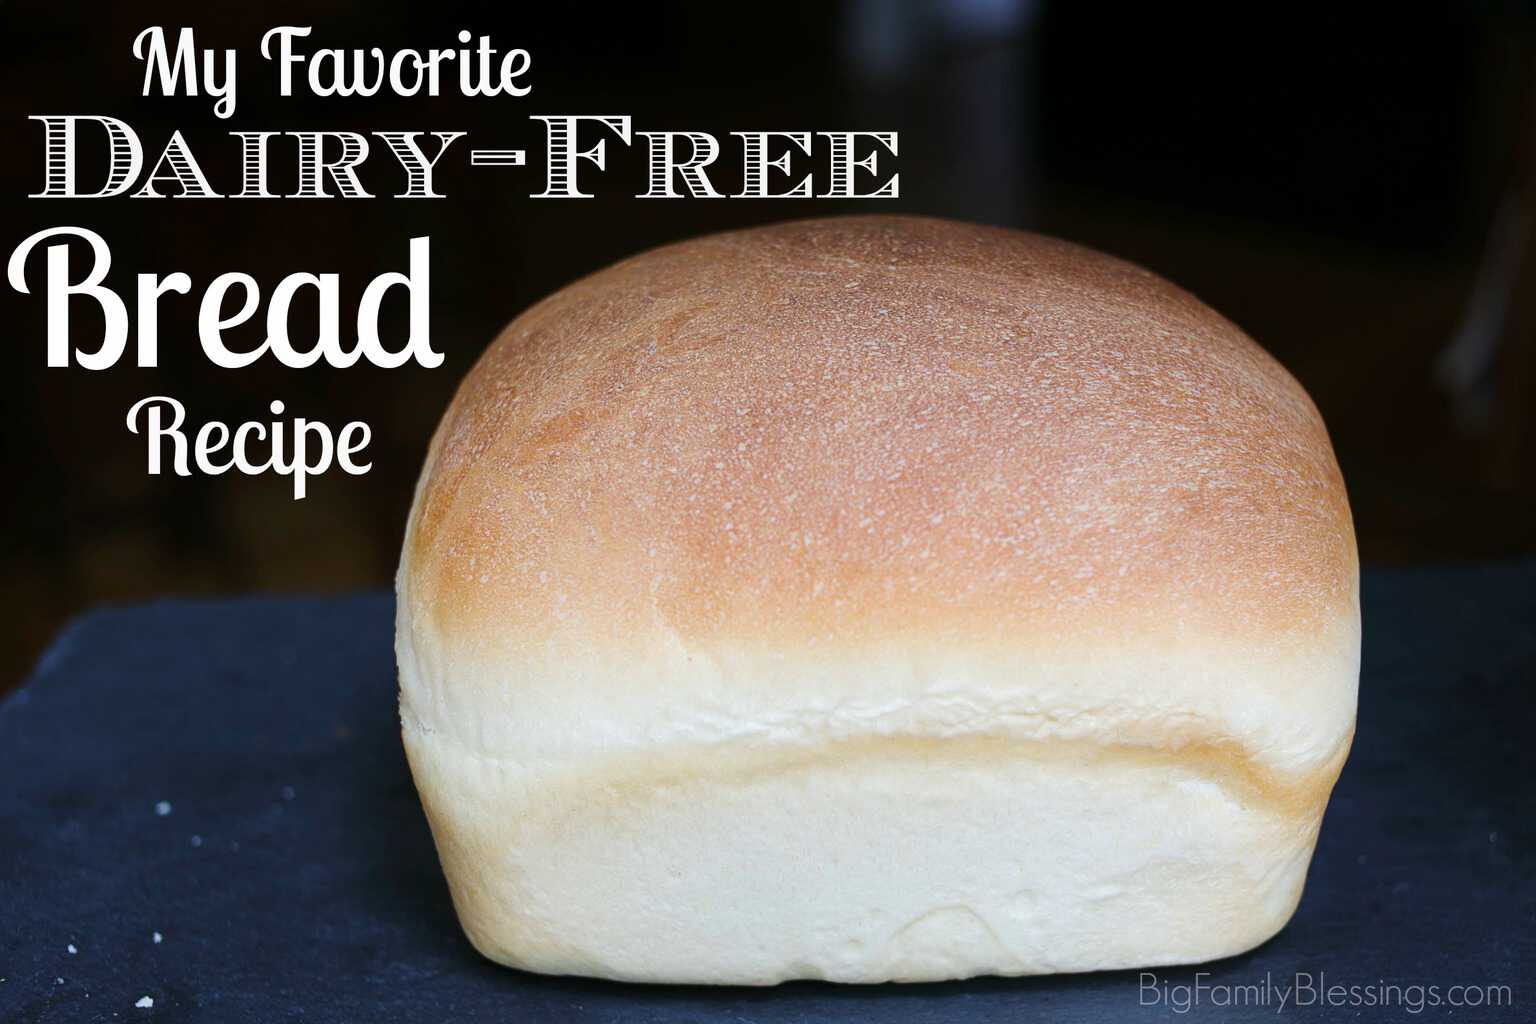 My Favorite Dairy-Free Homemade Bread Recipe